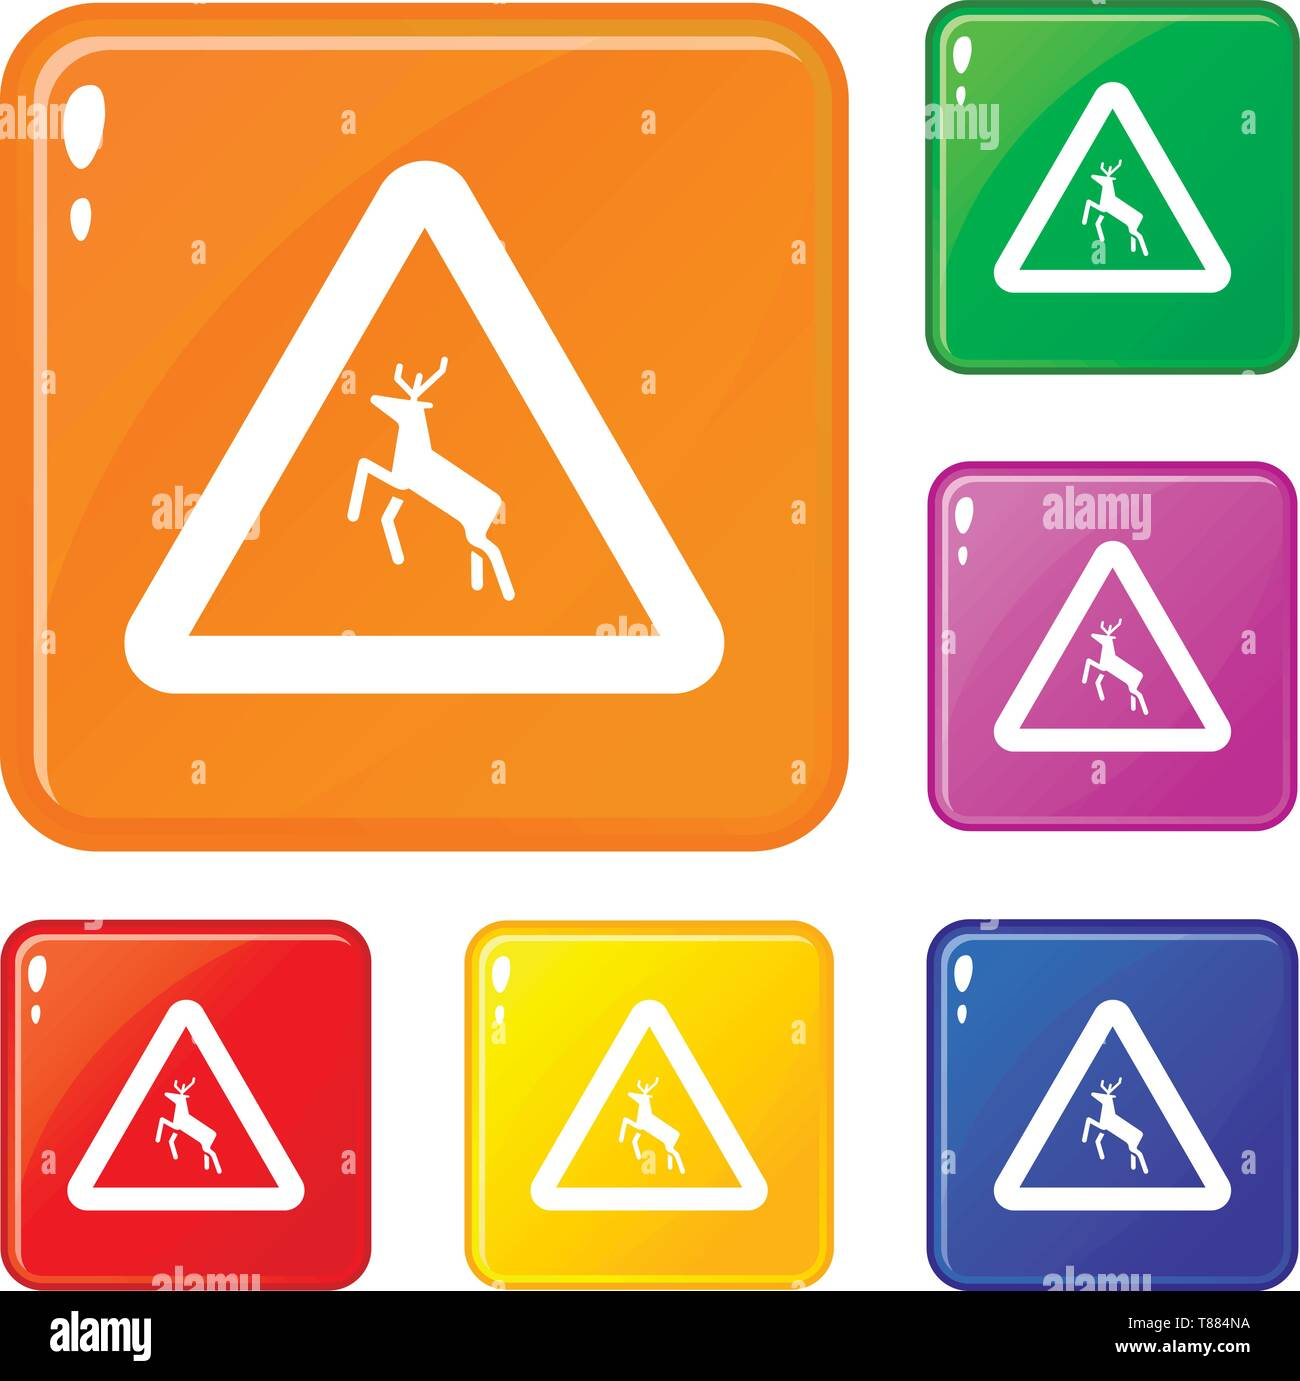 Deer traffic warning sign icons set vector color - Stock Image